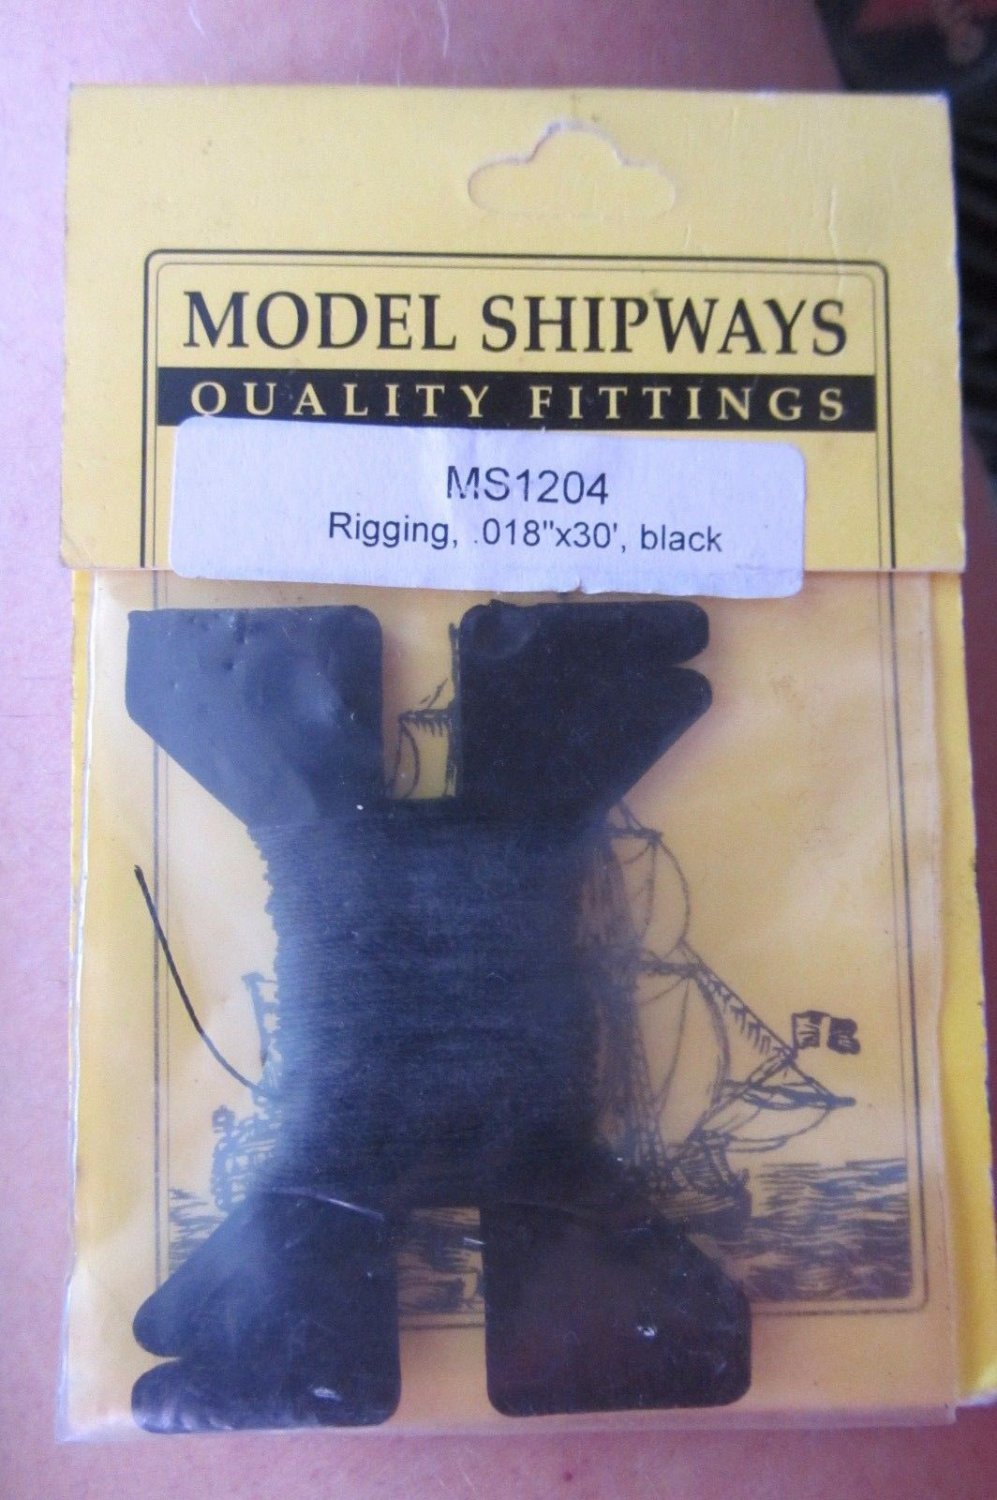 "Model Shipways Rigging MS1204 .018""x30' Black"